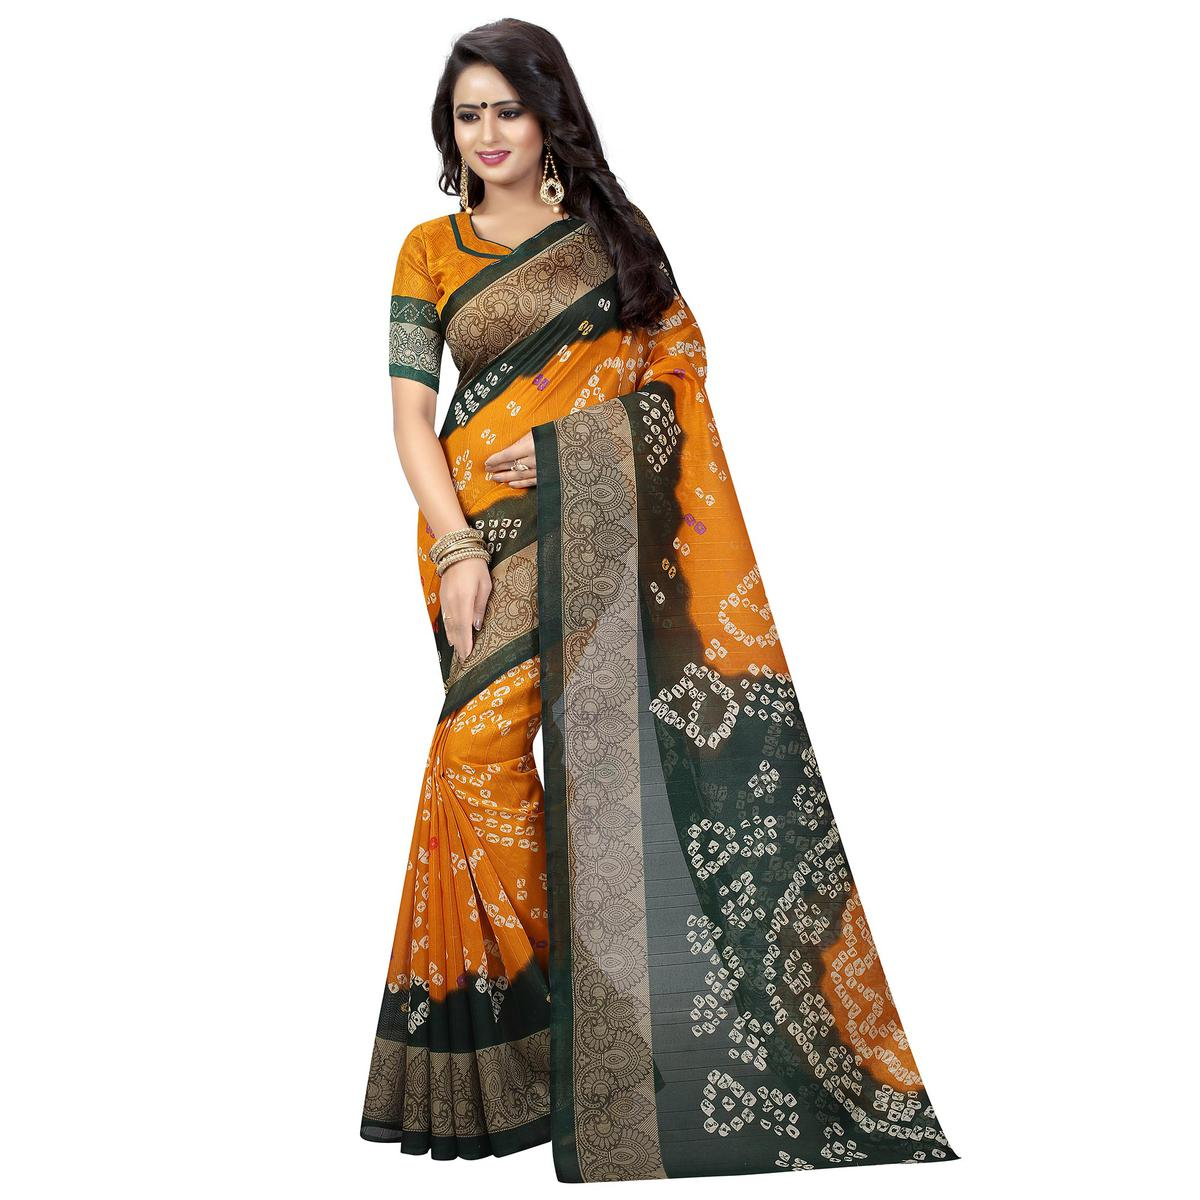 07f65f7272 Buy Marvellous Mustard Yellow Colored Casual Wear Printed Bhagalpuri Silk  Saree for womens online India, Best Prices, Reviews - Peachmode